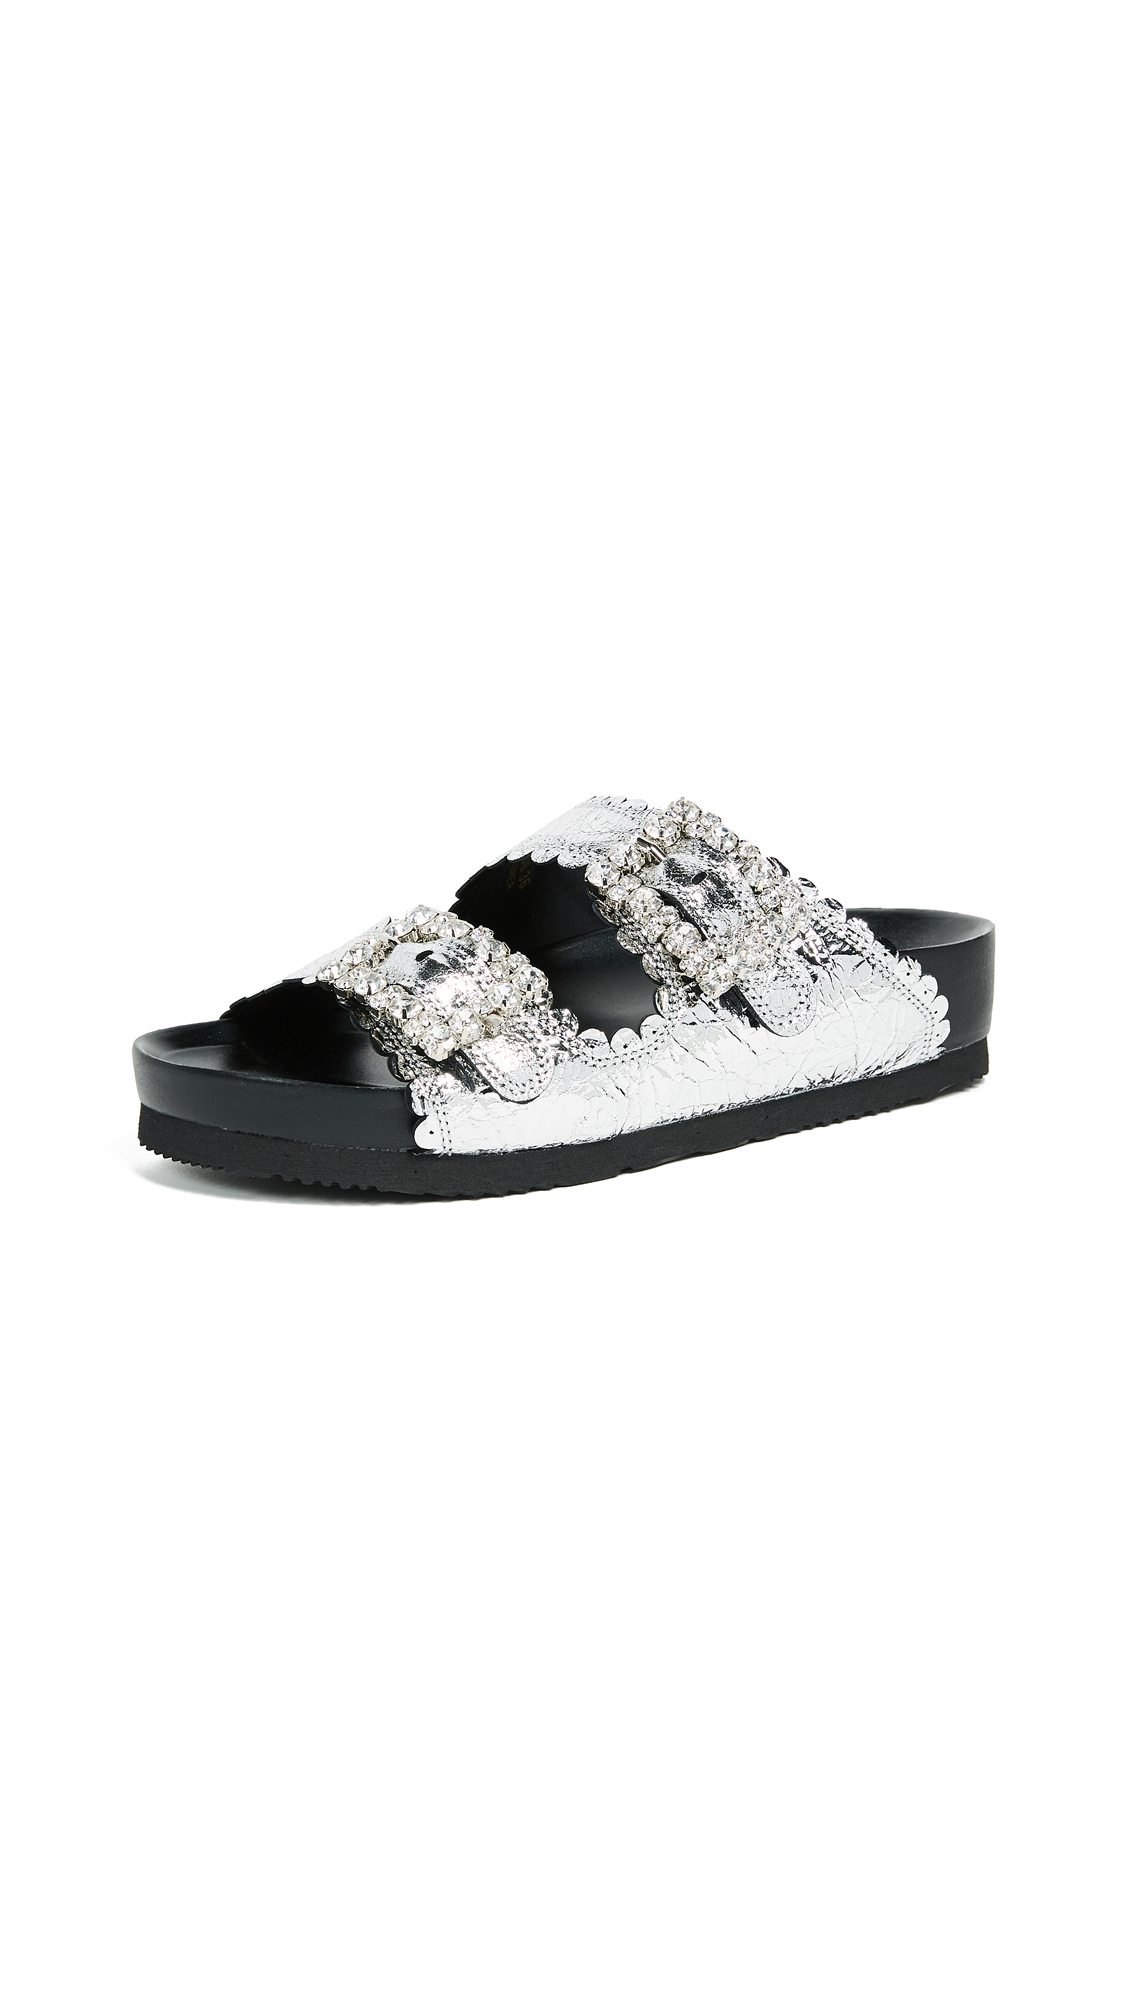 Suecomma Bonnie Embellished Buckle Flat Sandals - Silver